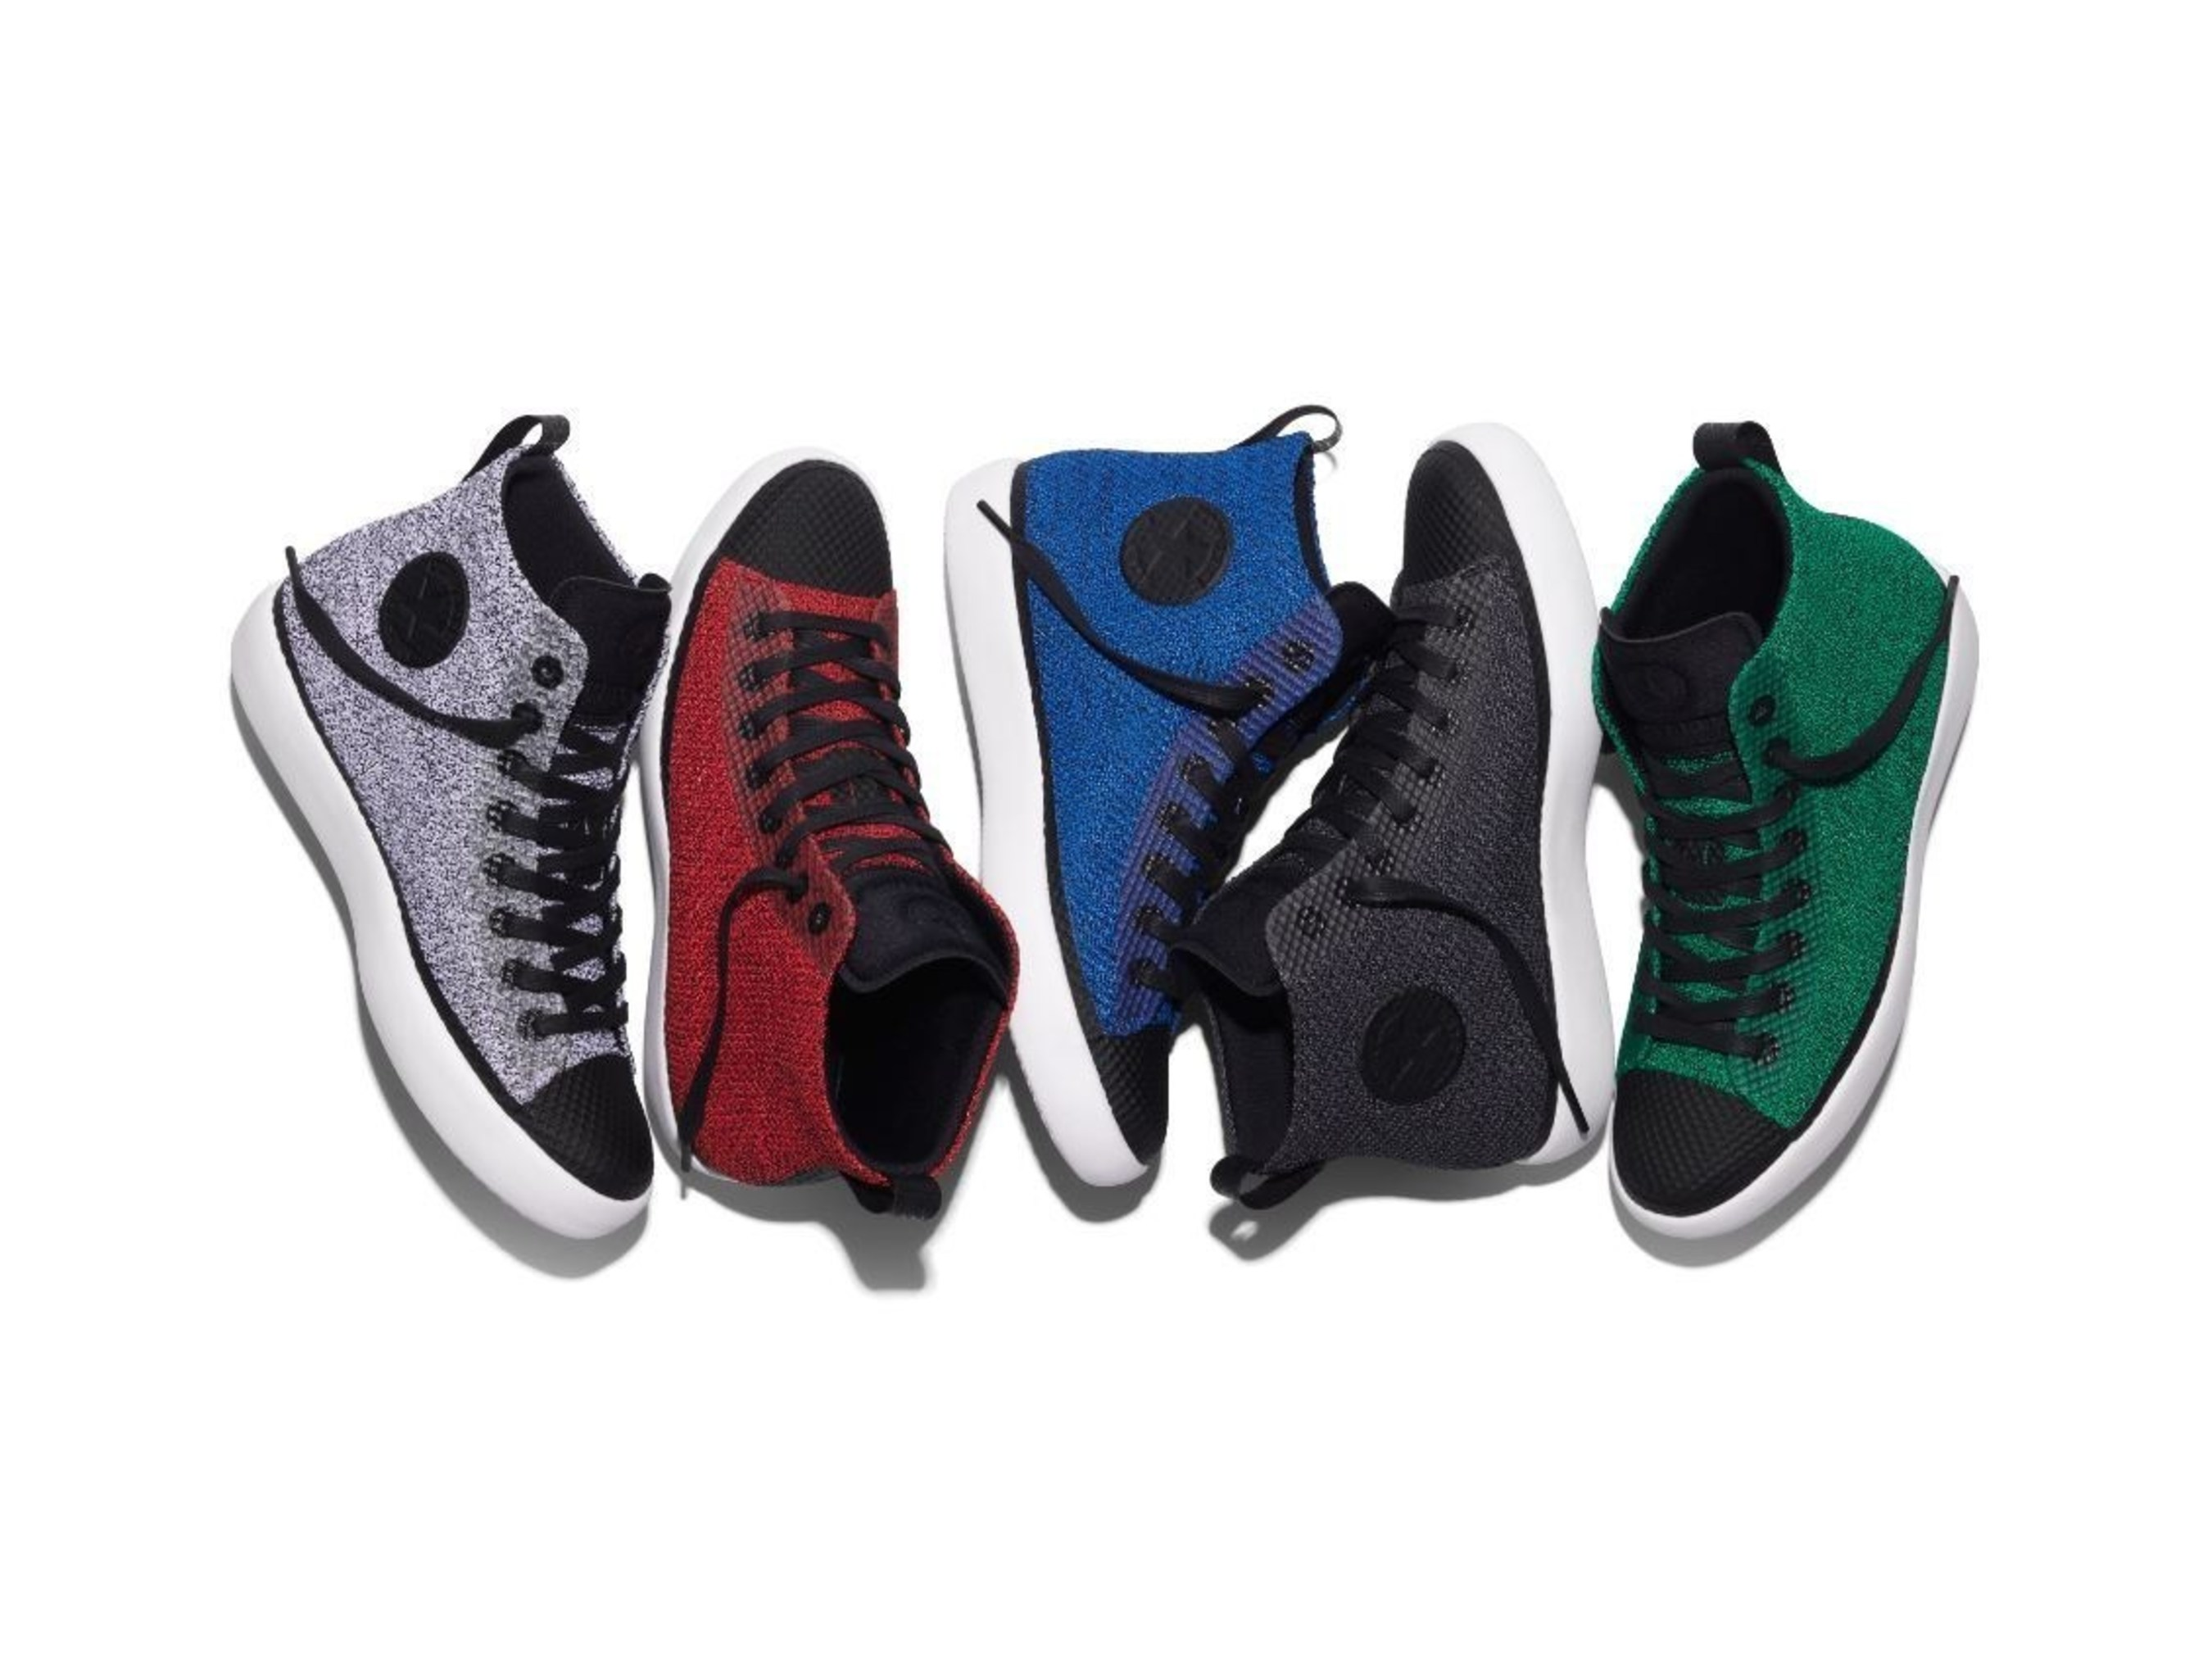 f28c4f68dca8 Converse Unveils The All Star Modern Sneaker Inspired By The 1920 ...